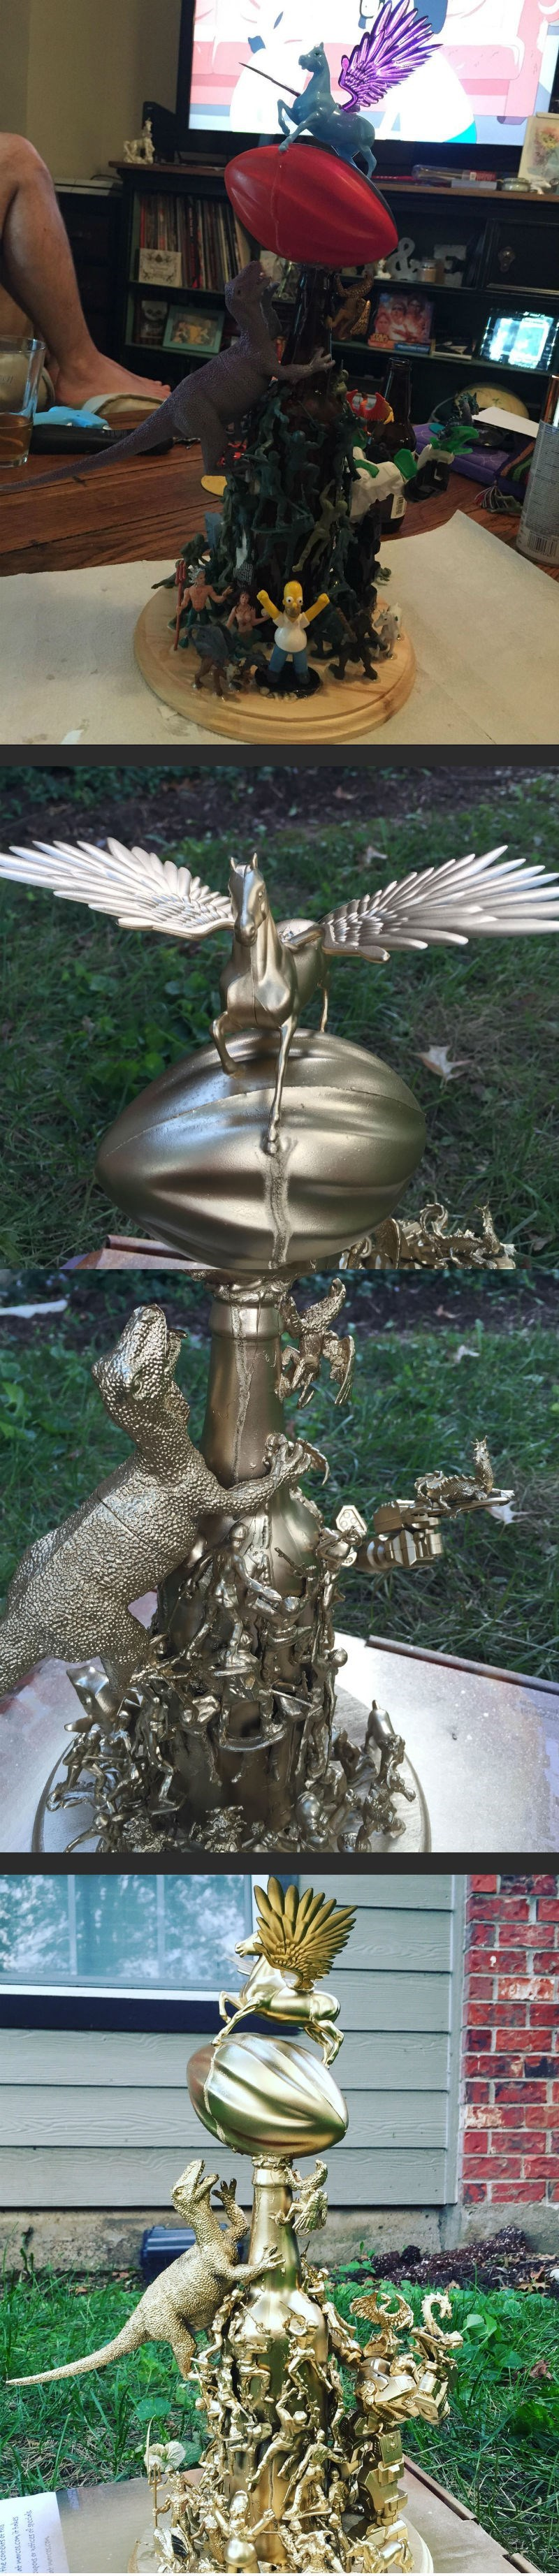 win badass fantasy football league trophy gets golden spray paint